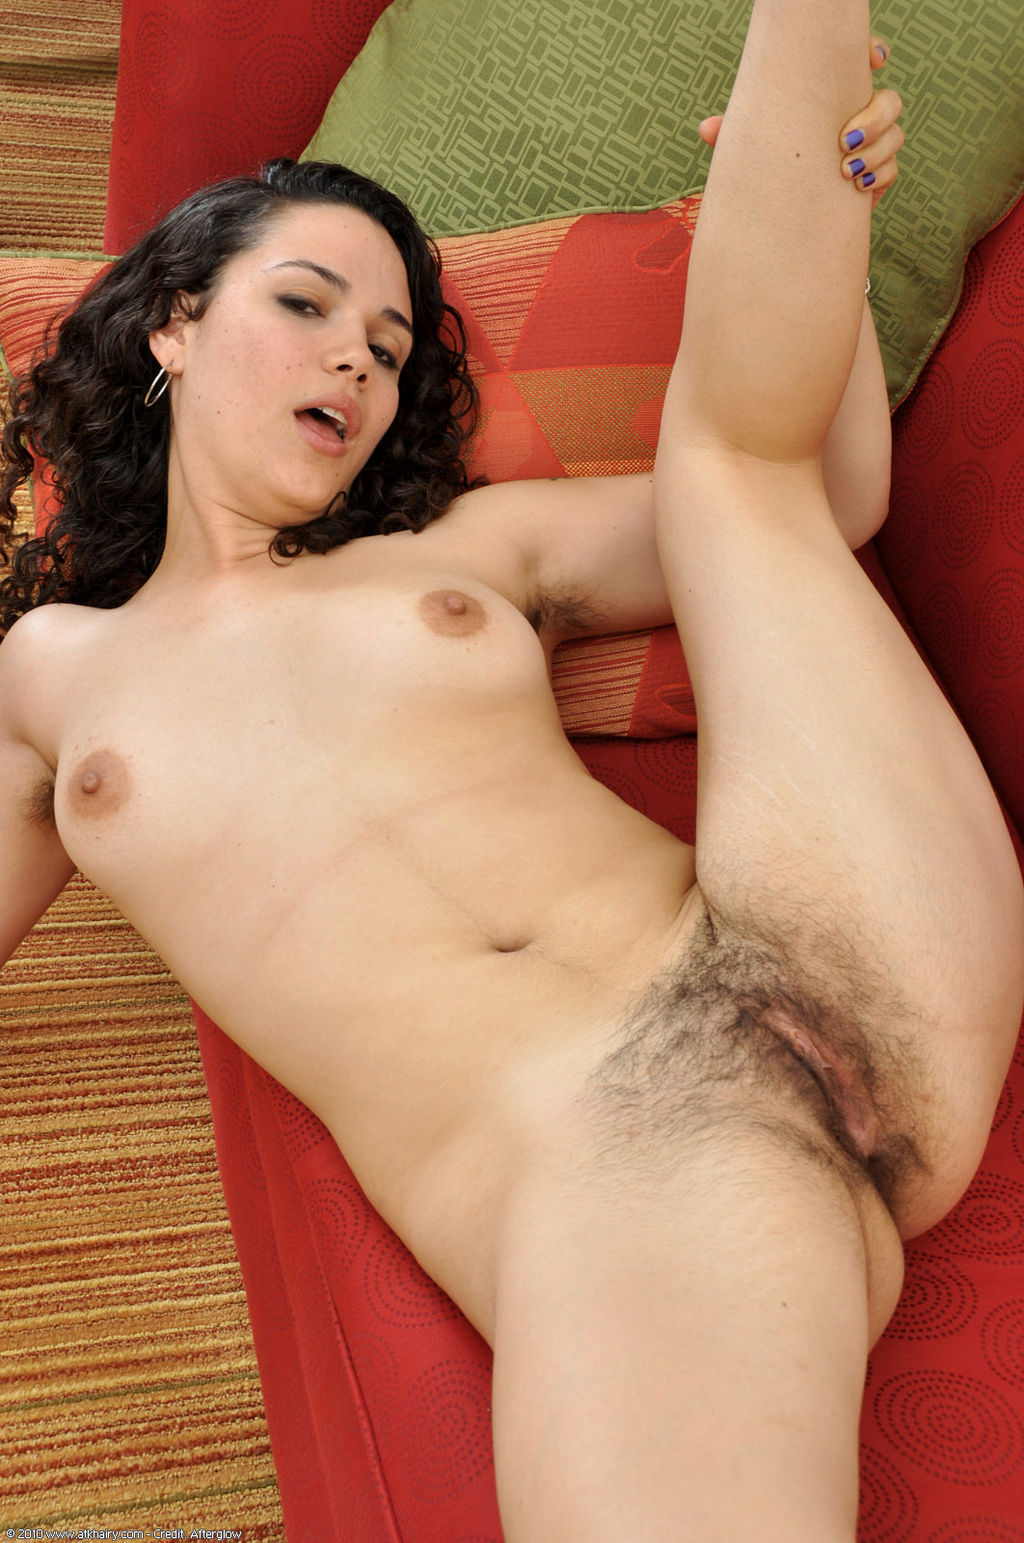 Atk Hairy Com zayda atk-hairy pictures and videos